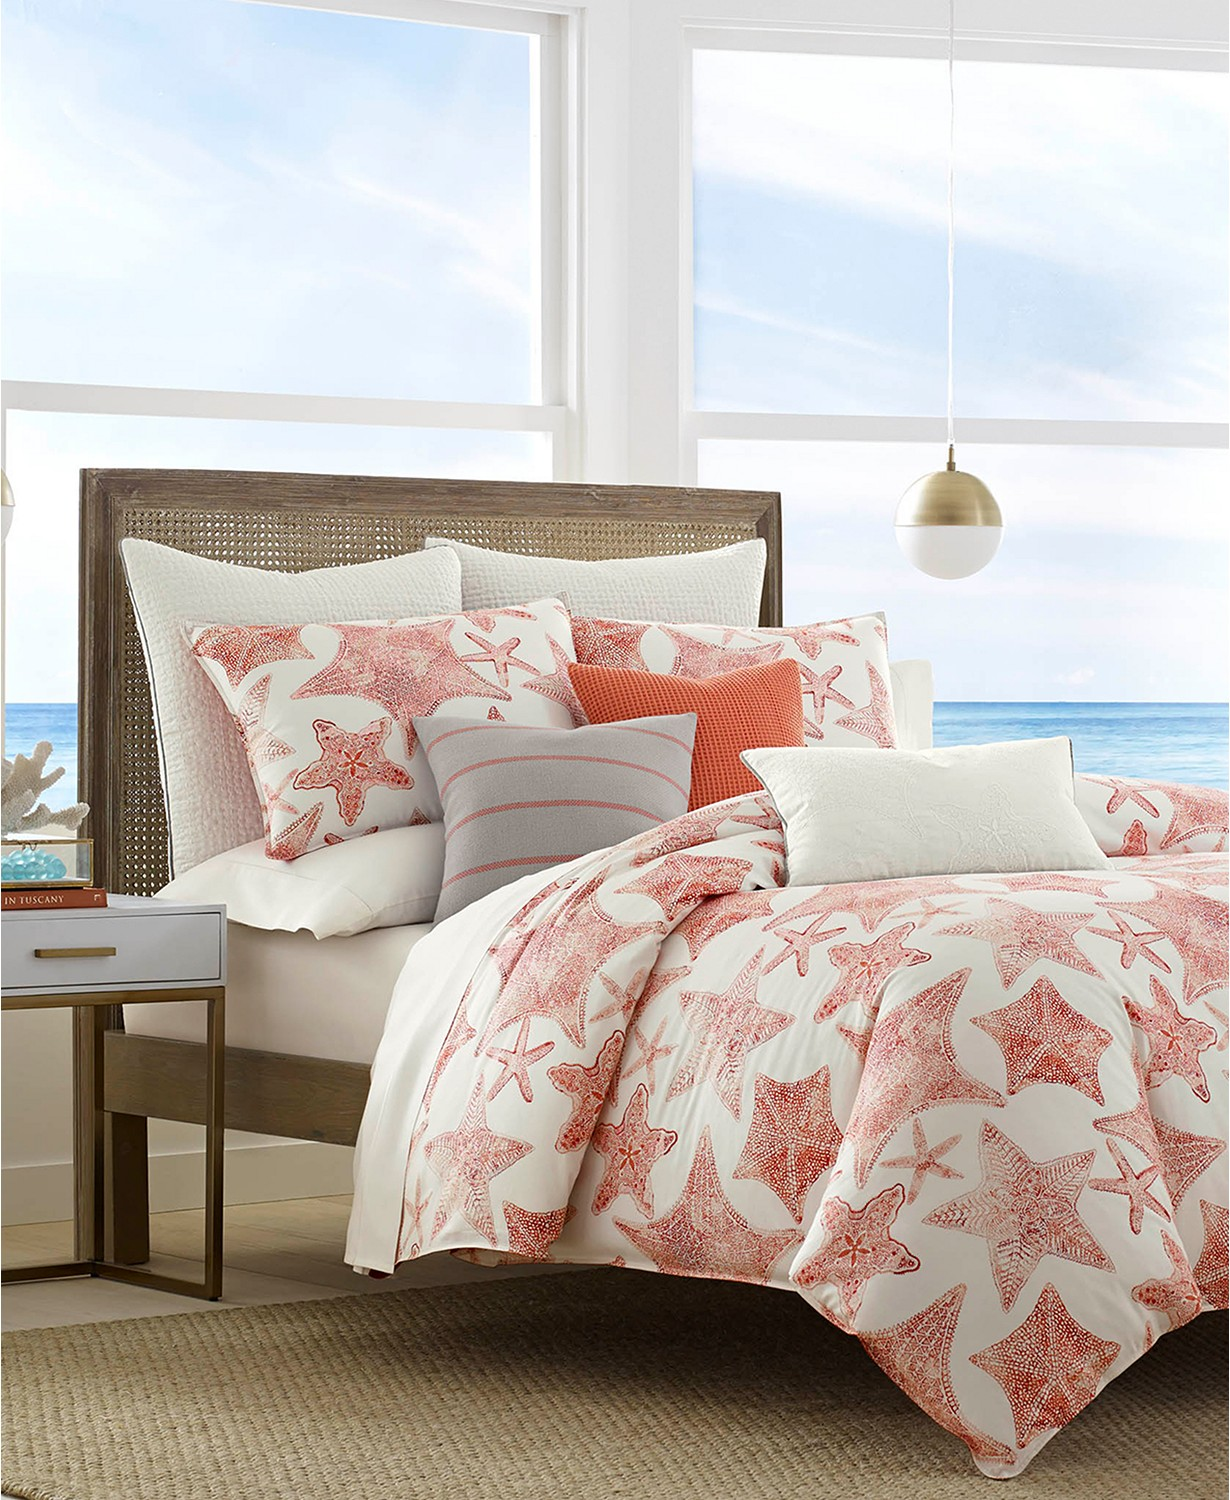 Nautica Bedding Sets Will Look Absolutely Wonderful In Your Bedroom